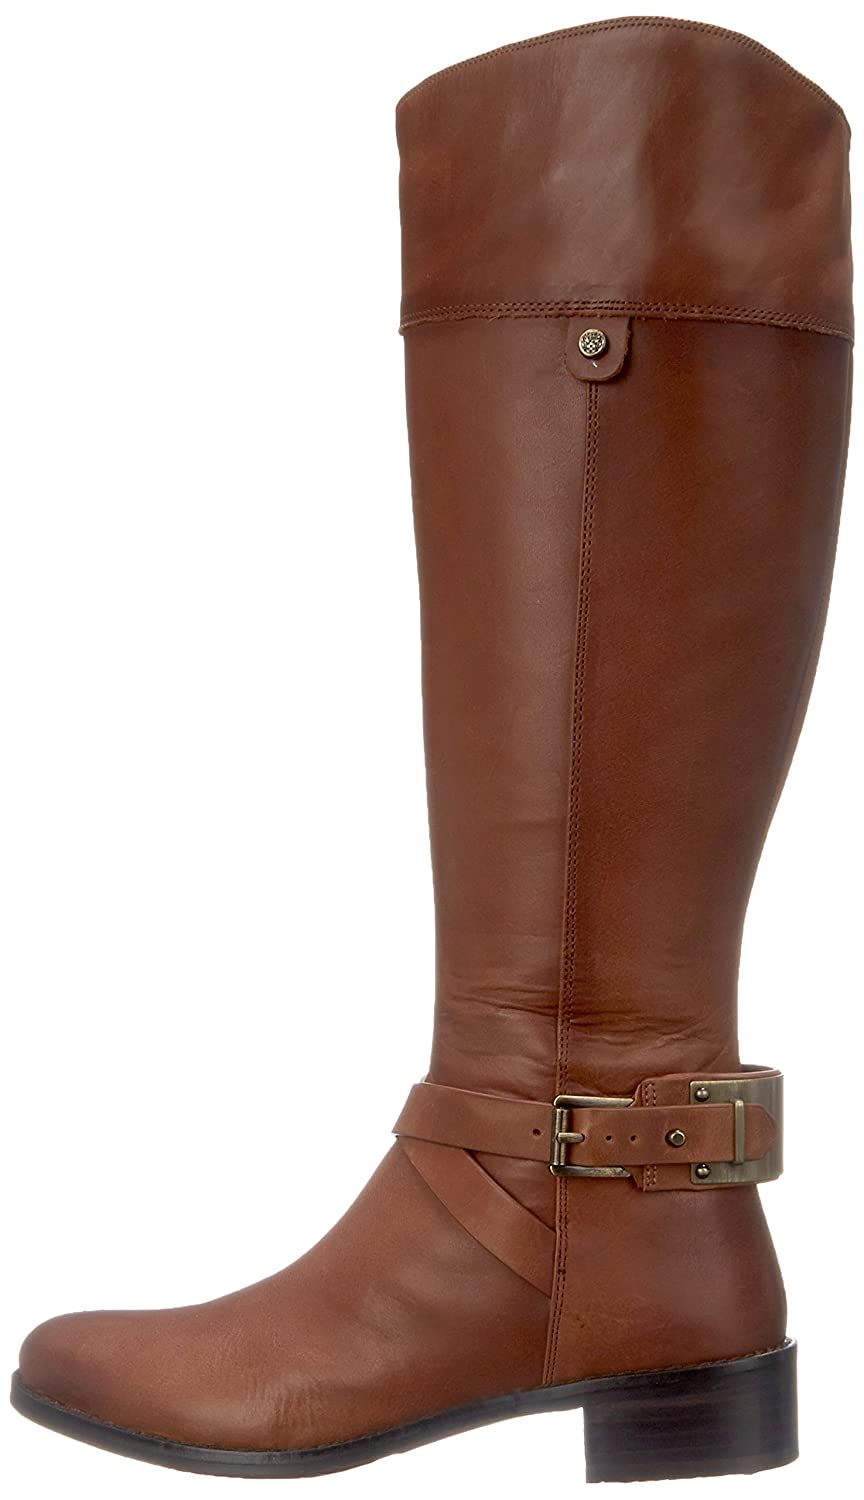 108ea5f3b24 Vince Camuto Women's Jaran Riding Boot